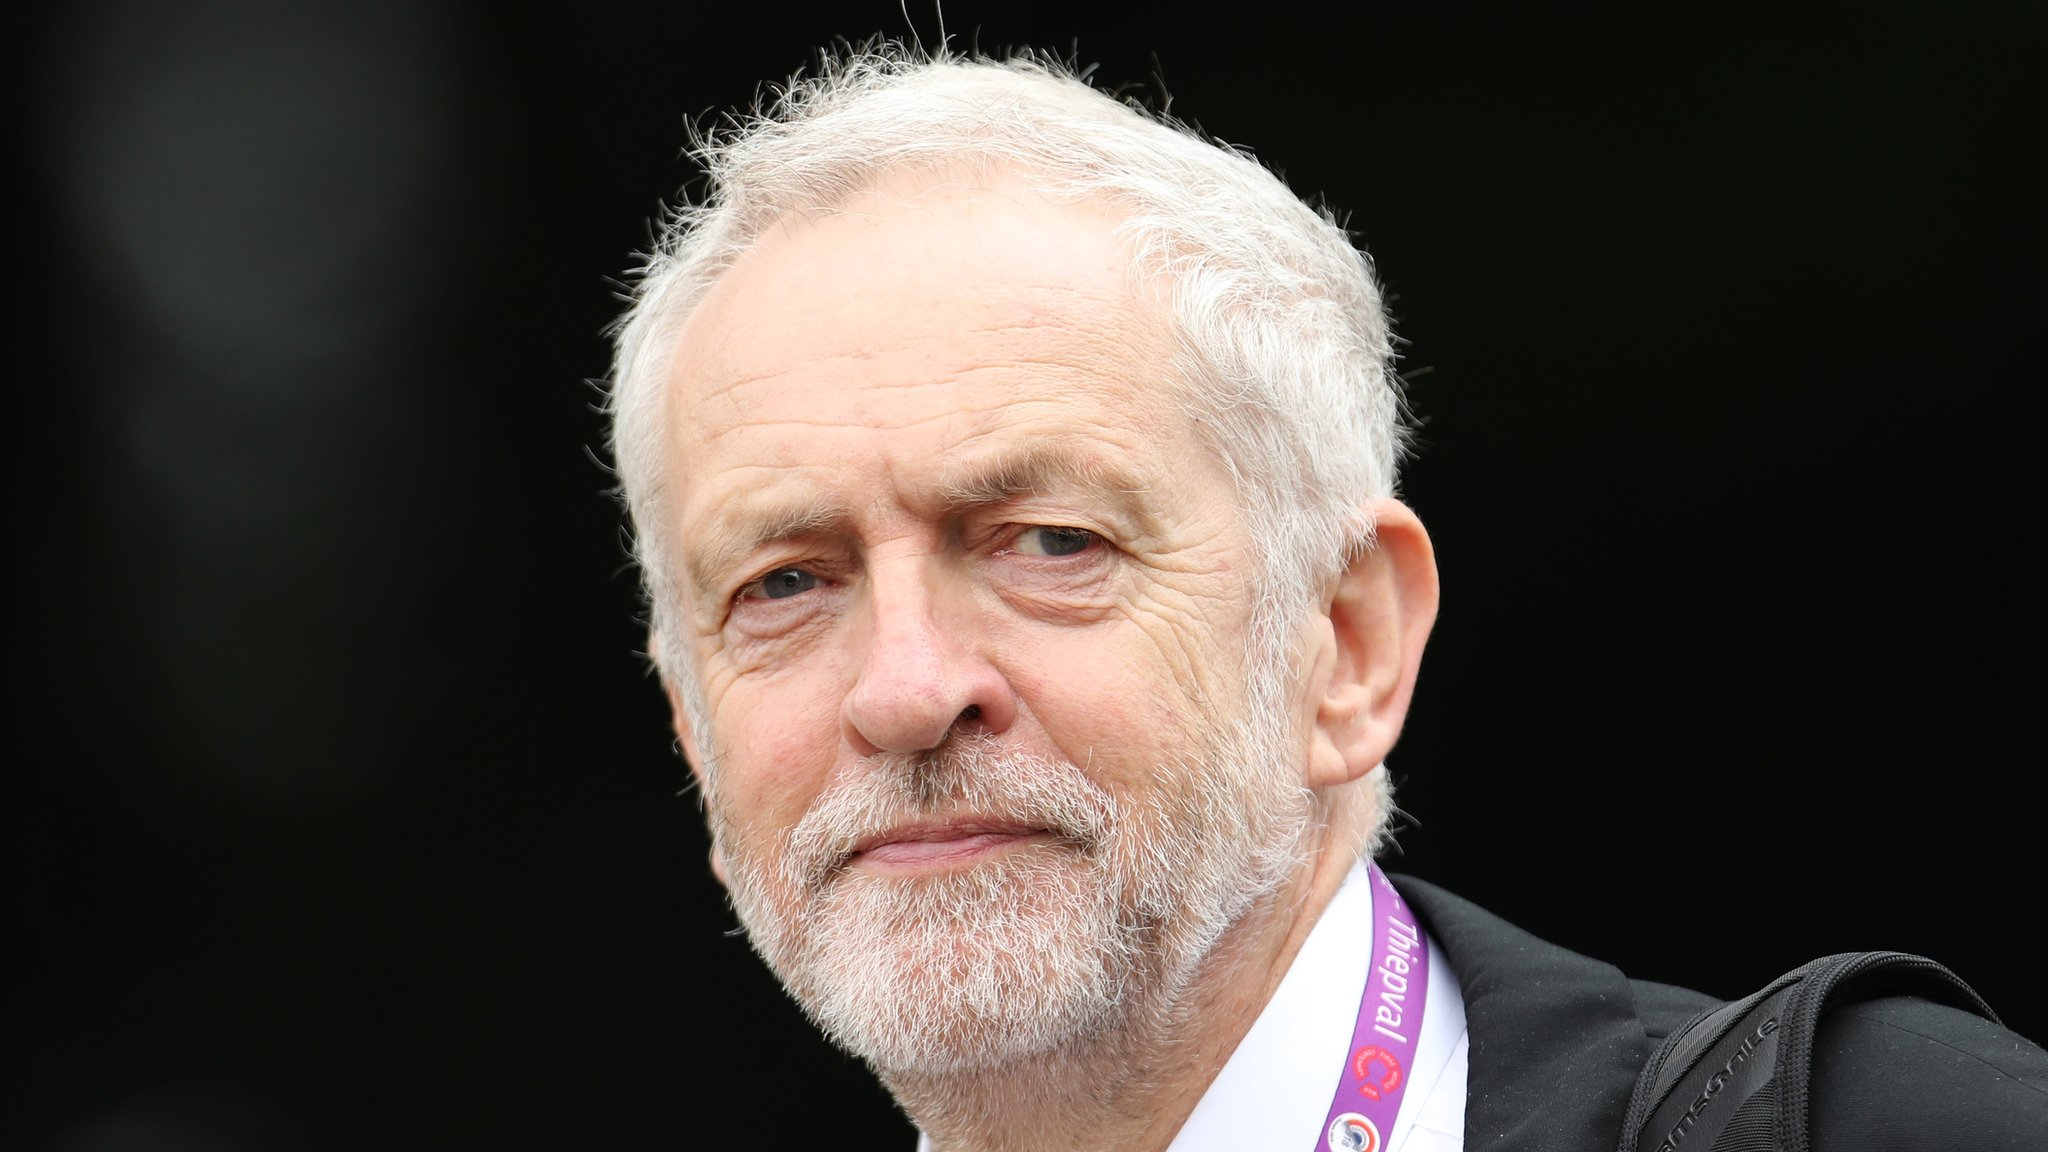 Labour leadership: Shadow cabinet bid to ease Corbyn out